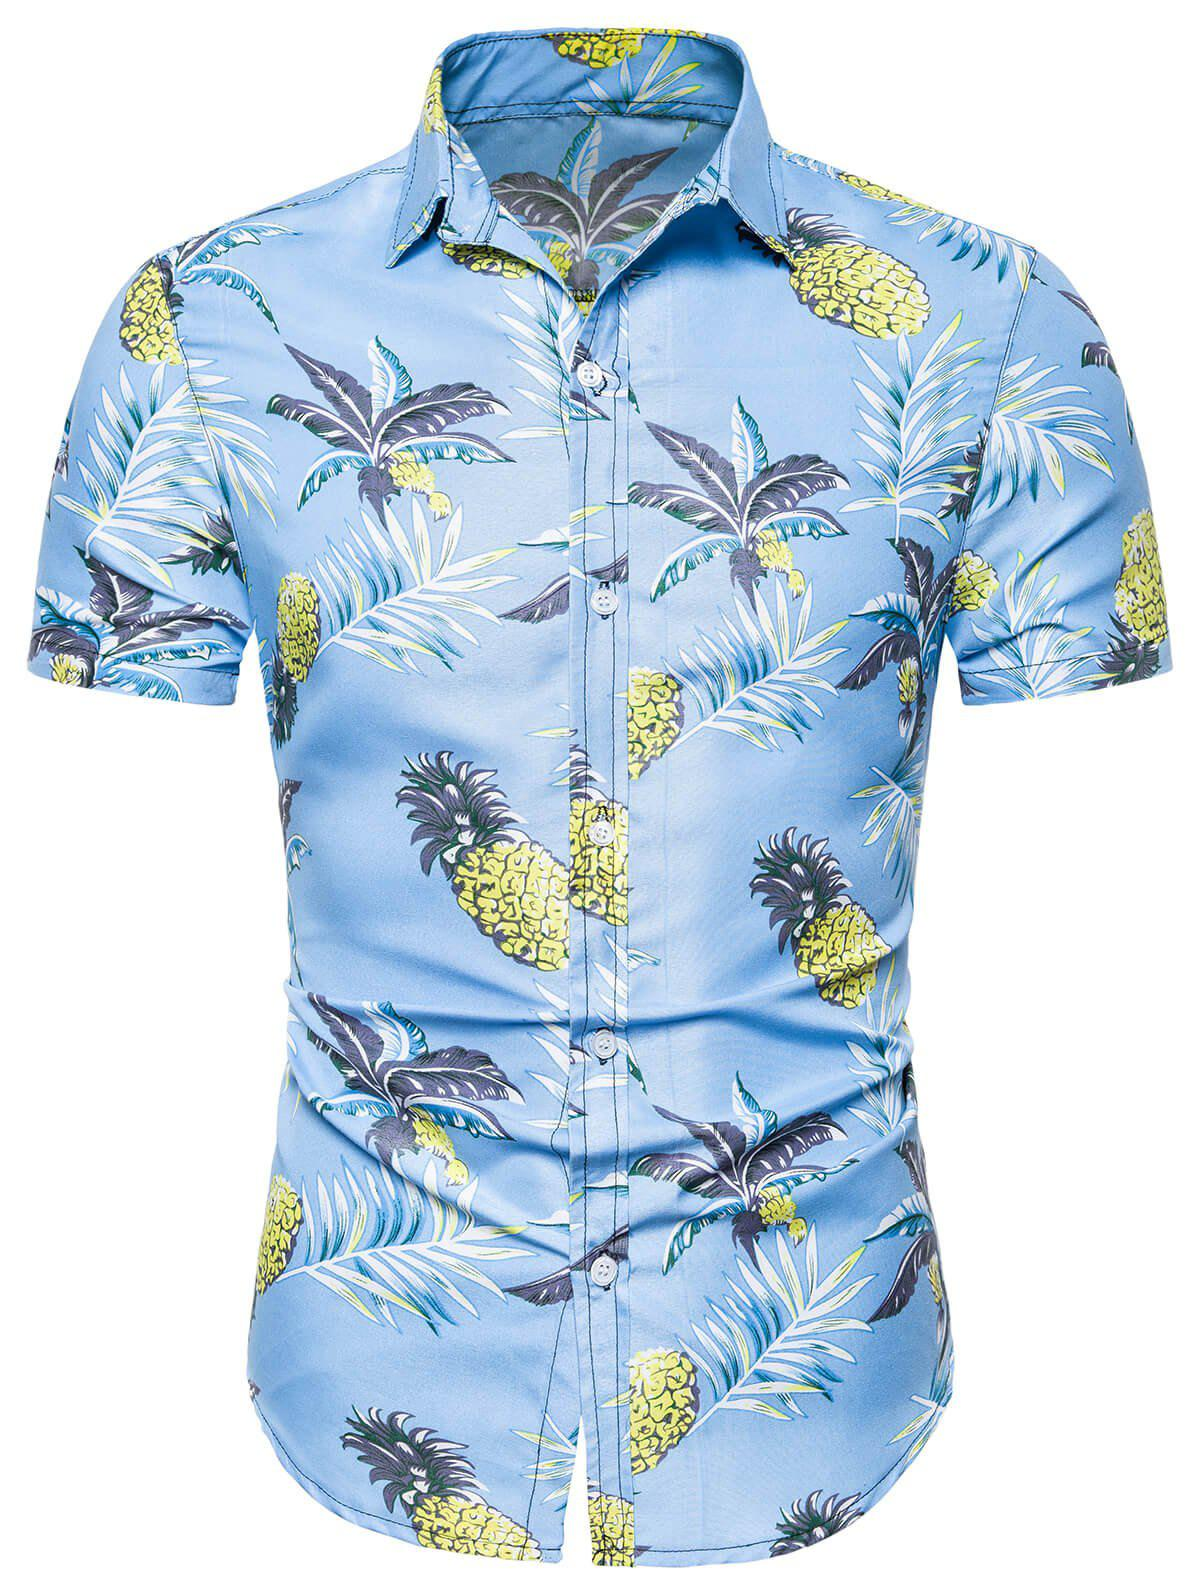 Affordable Pineapple Printed Leisure Short Sleeves Shirt